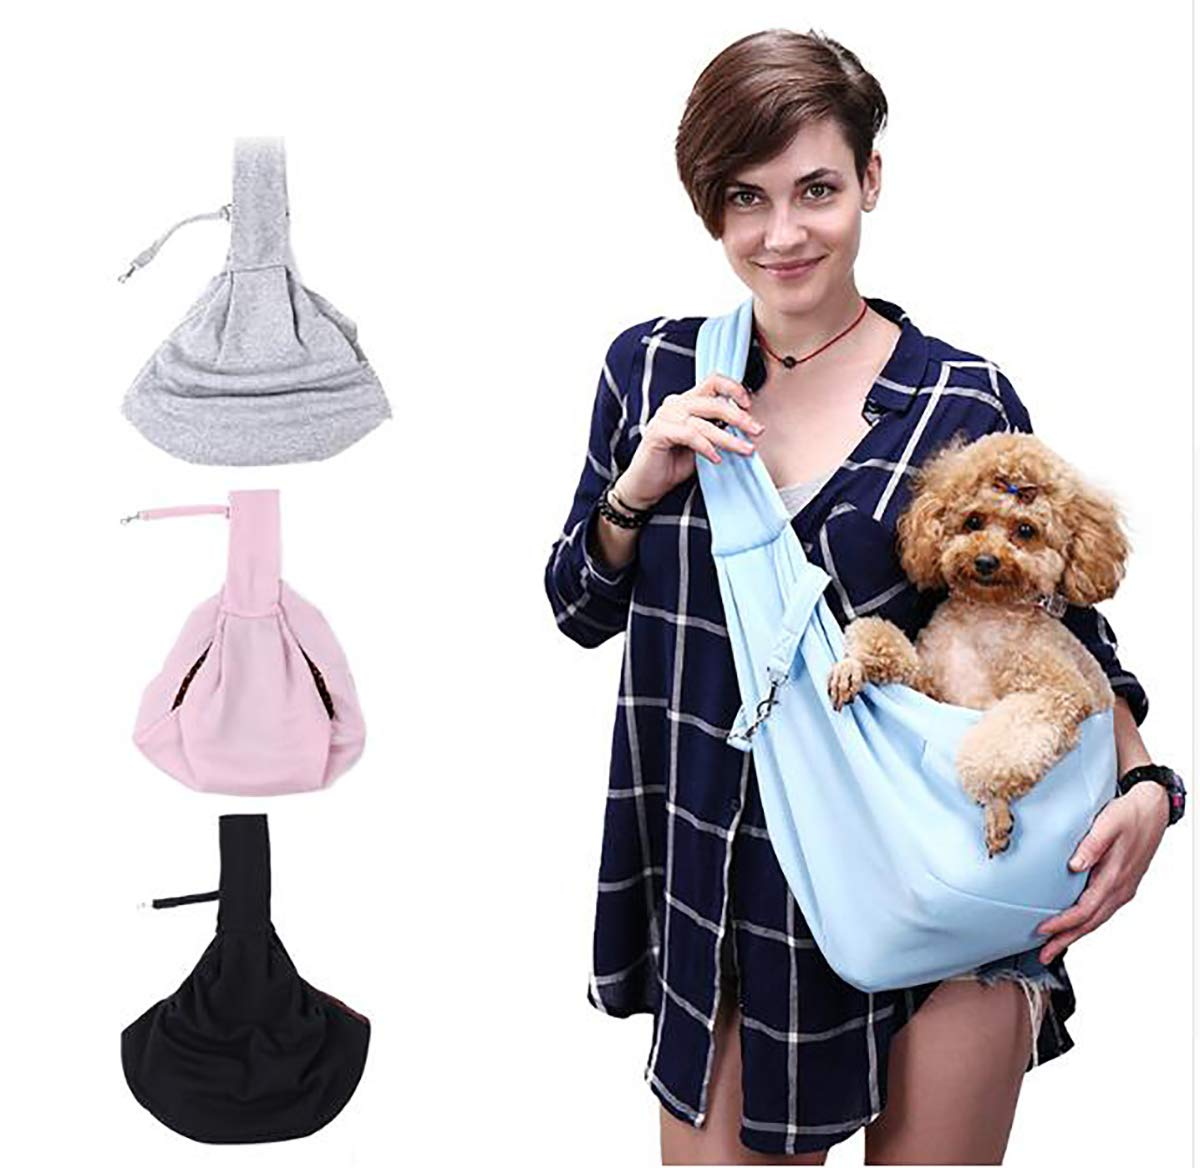 bluee Reversible Small Dog Bag Cat Sling Carrier Bag Travel Tote Breathable Double-Sided Pouch Shoulder Carry Tote Handbag,bluee